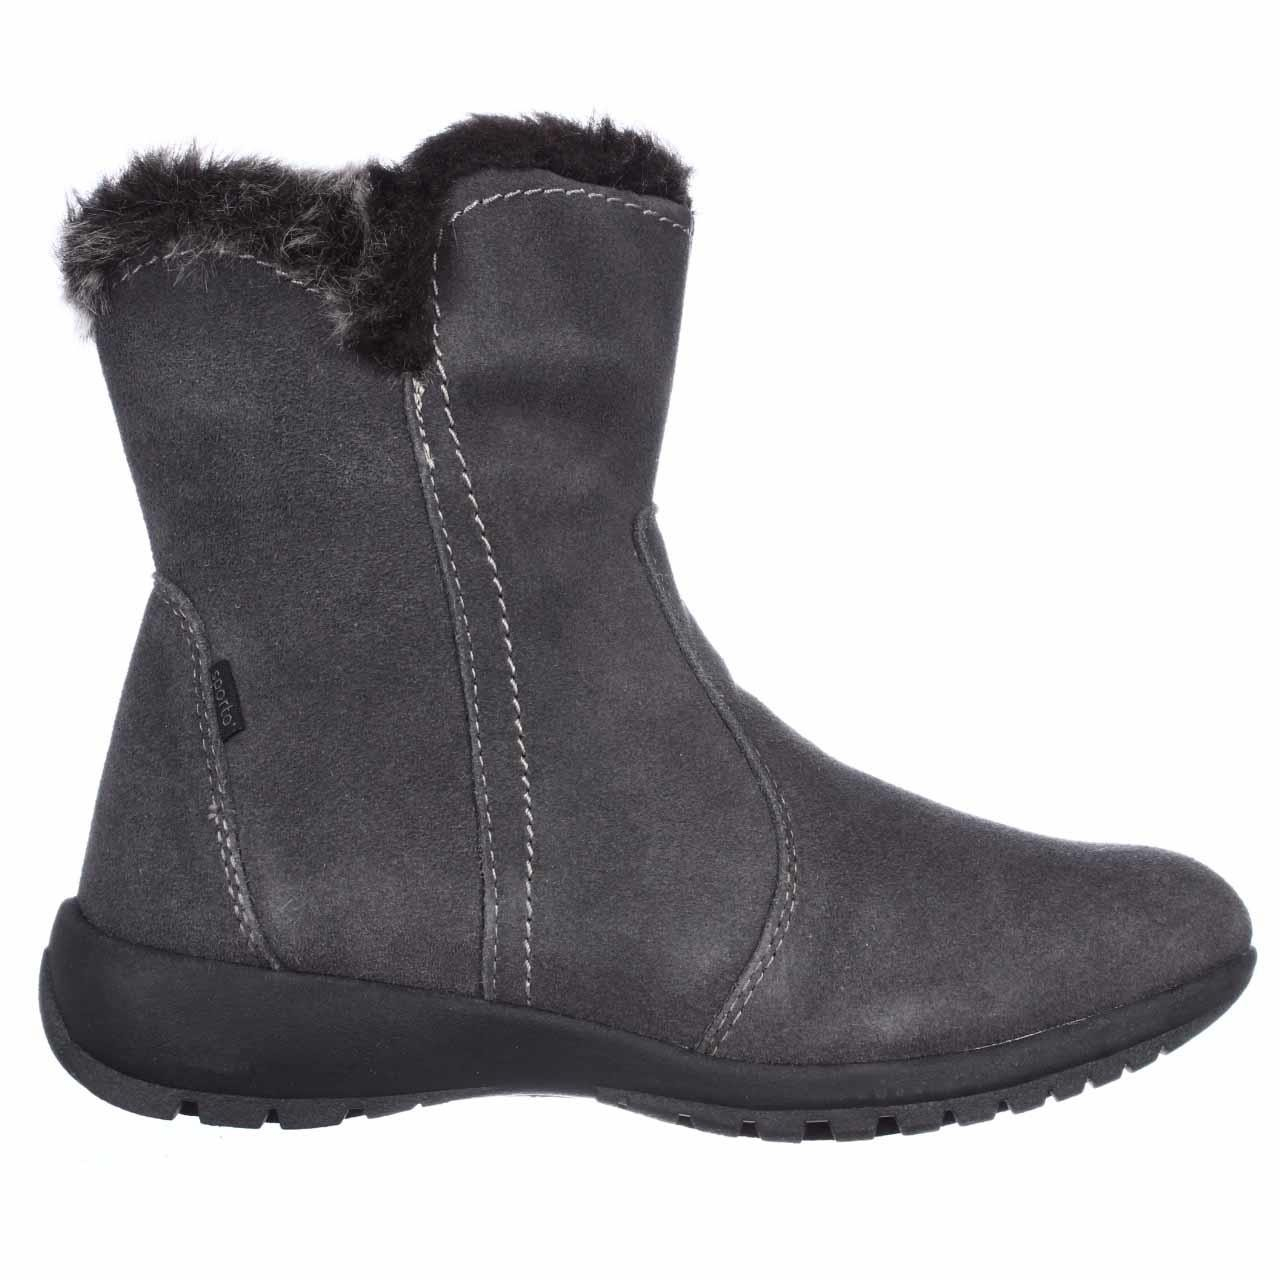 sporto karmen mid calf waterproof winter boots in gray lyst